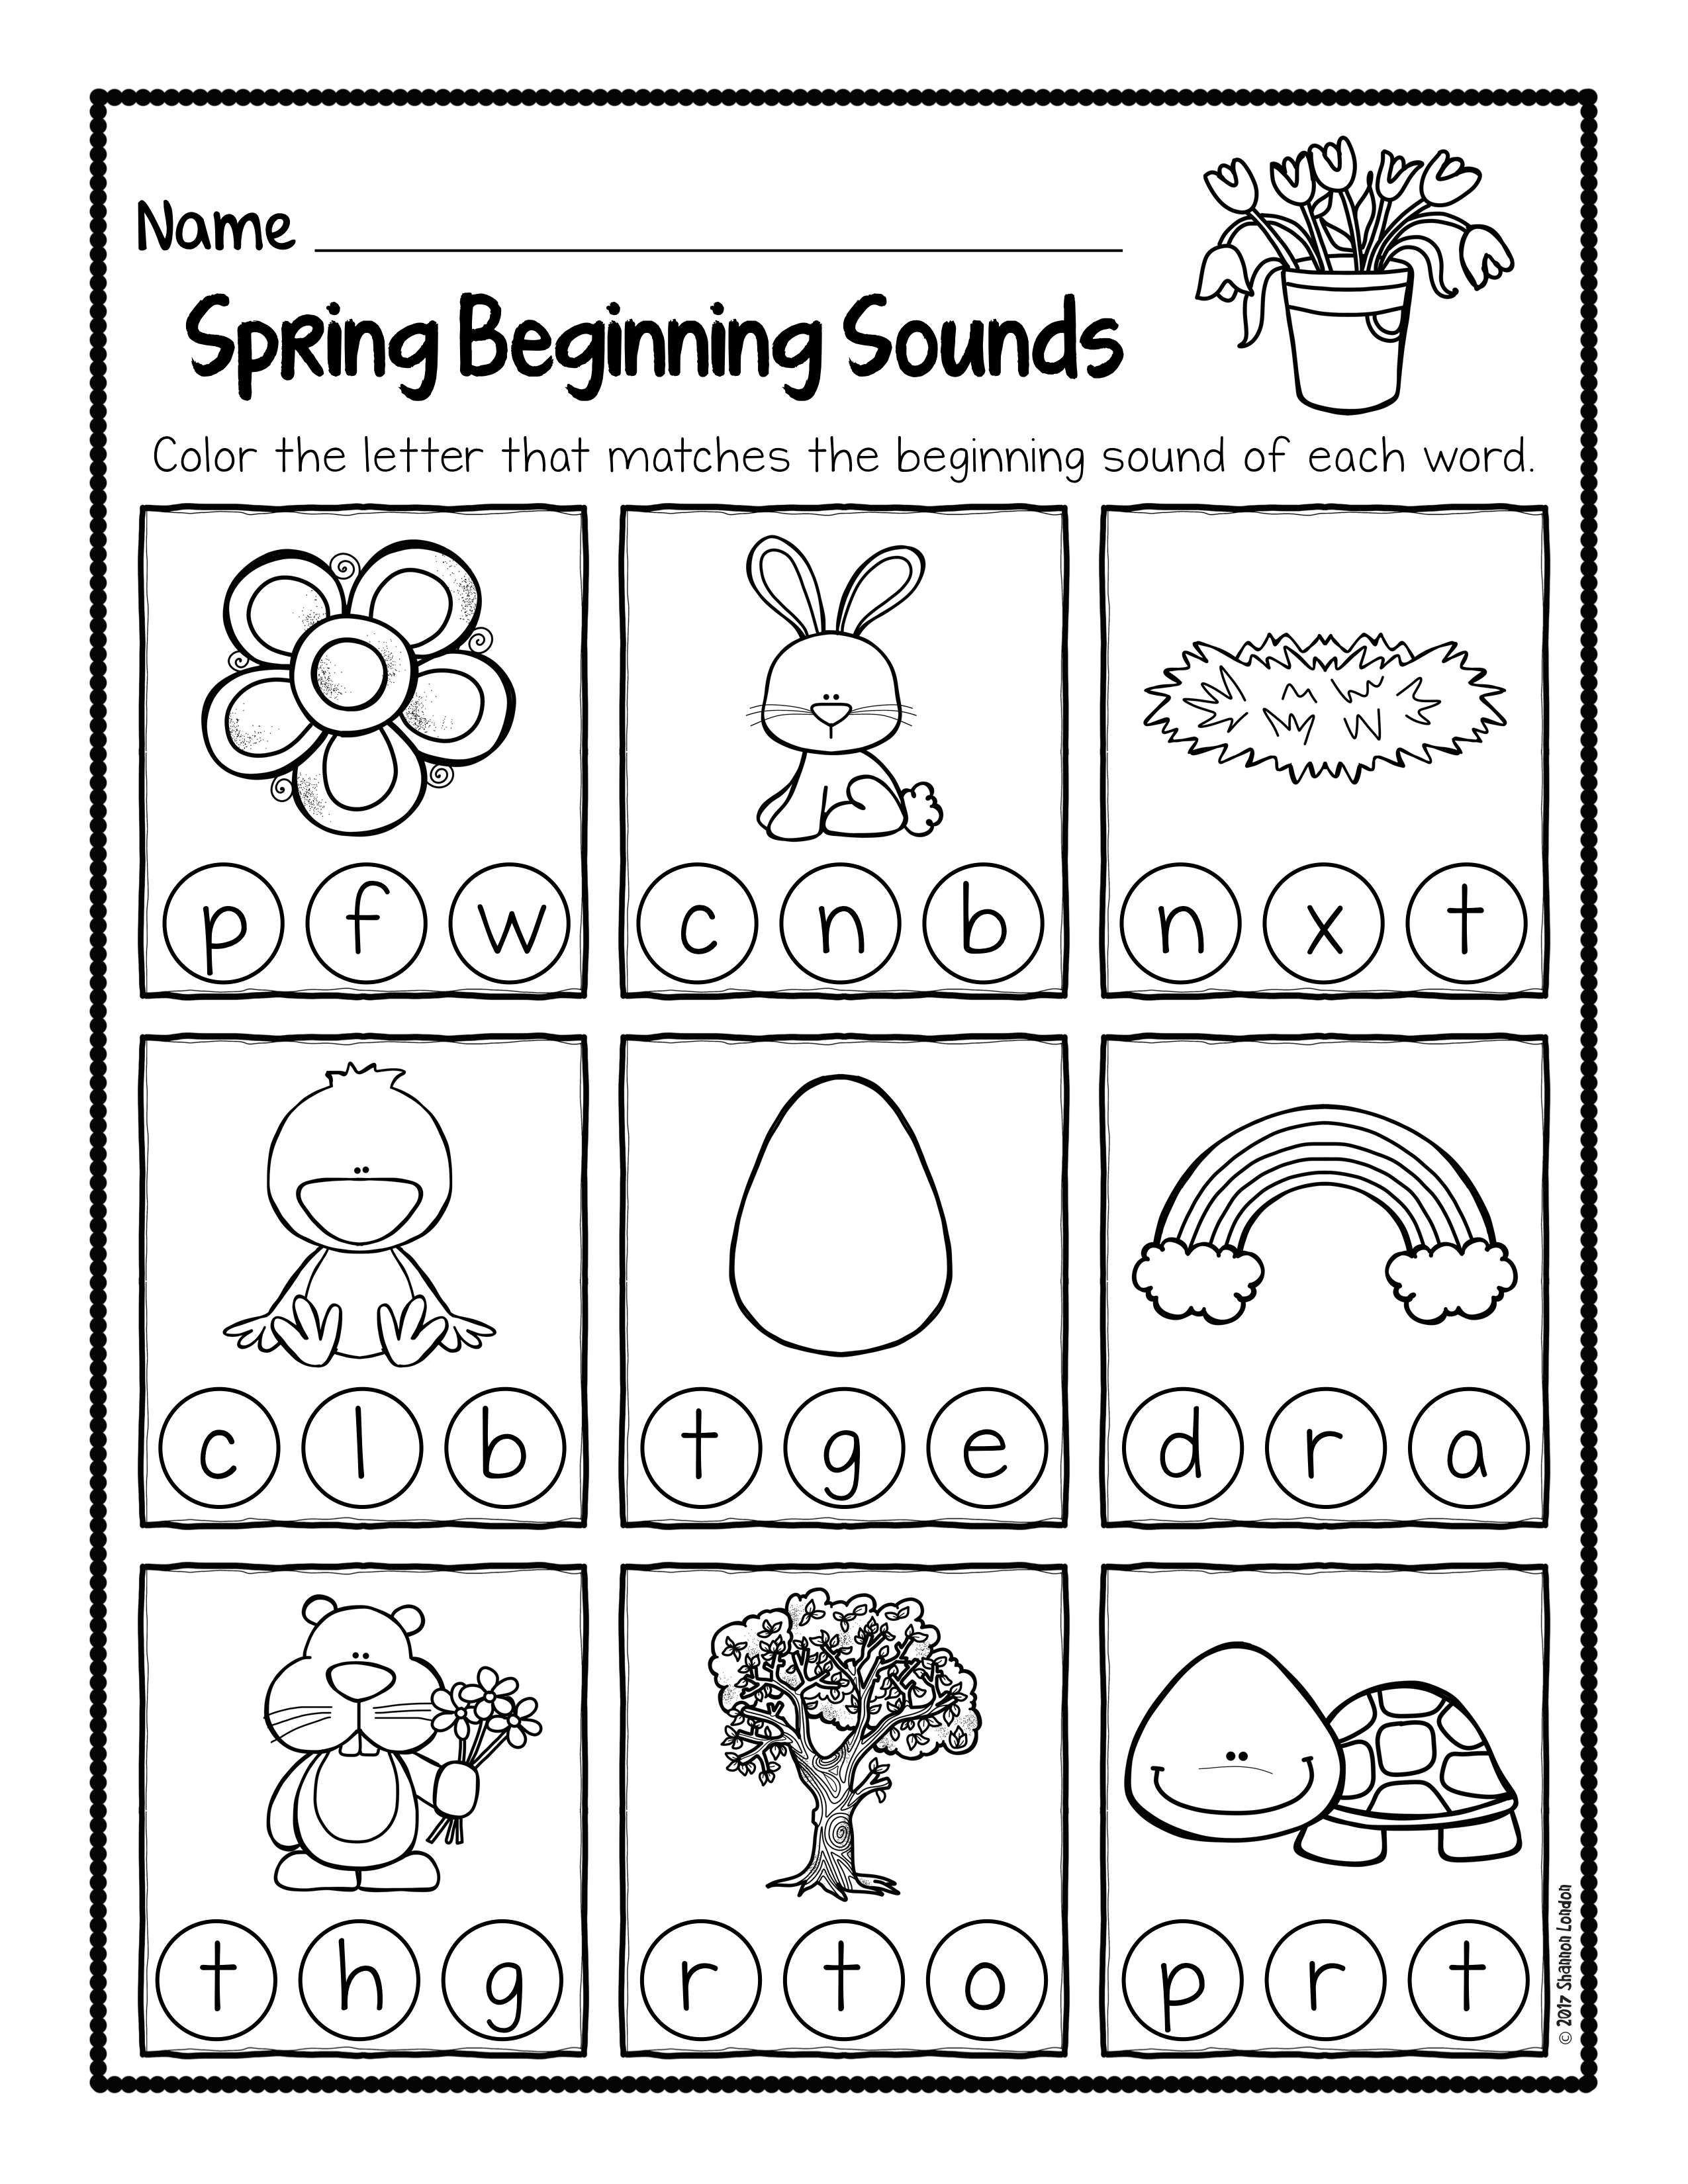 Spring Beginning Sound Worksheets 003 The Super Teacher